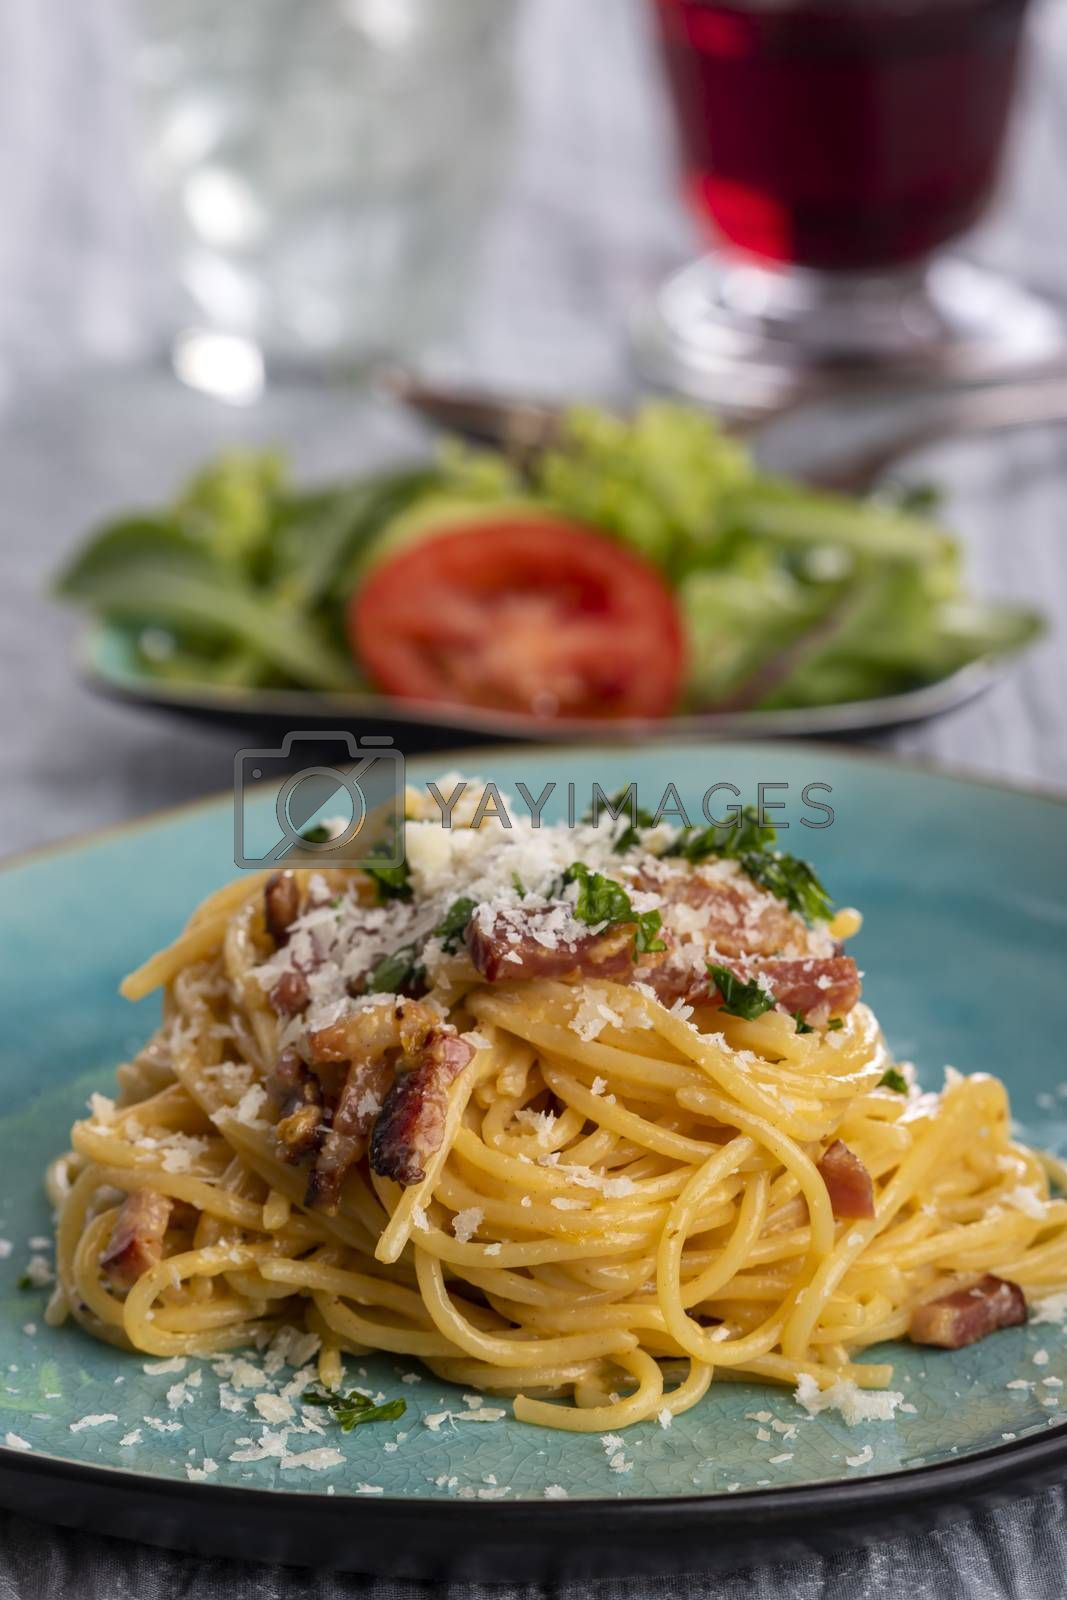 spaghetti carbonara on a blue plate by bernjuer